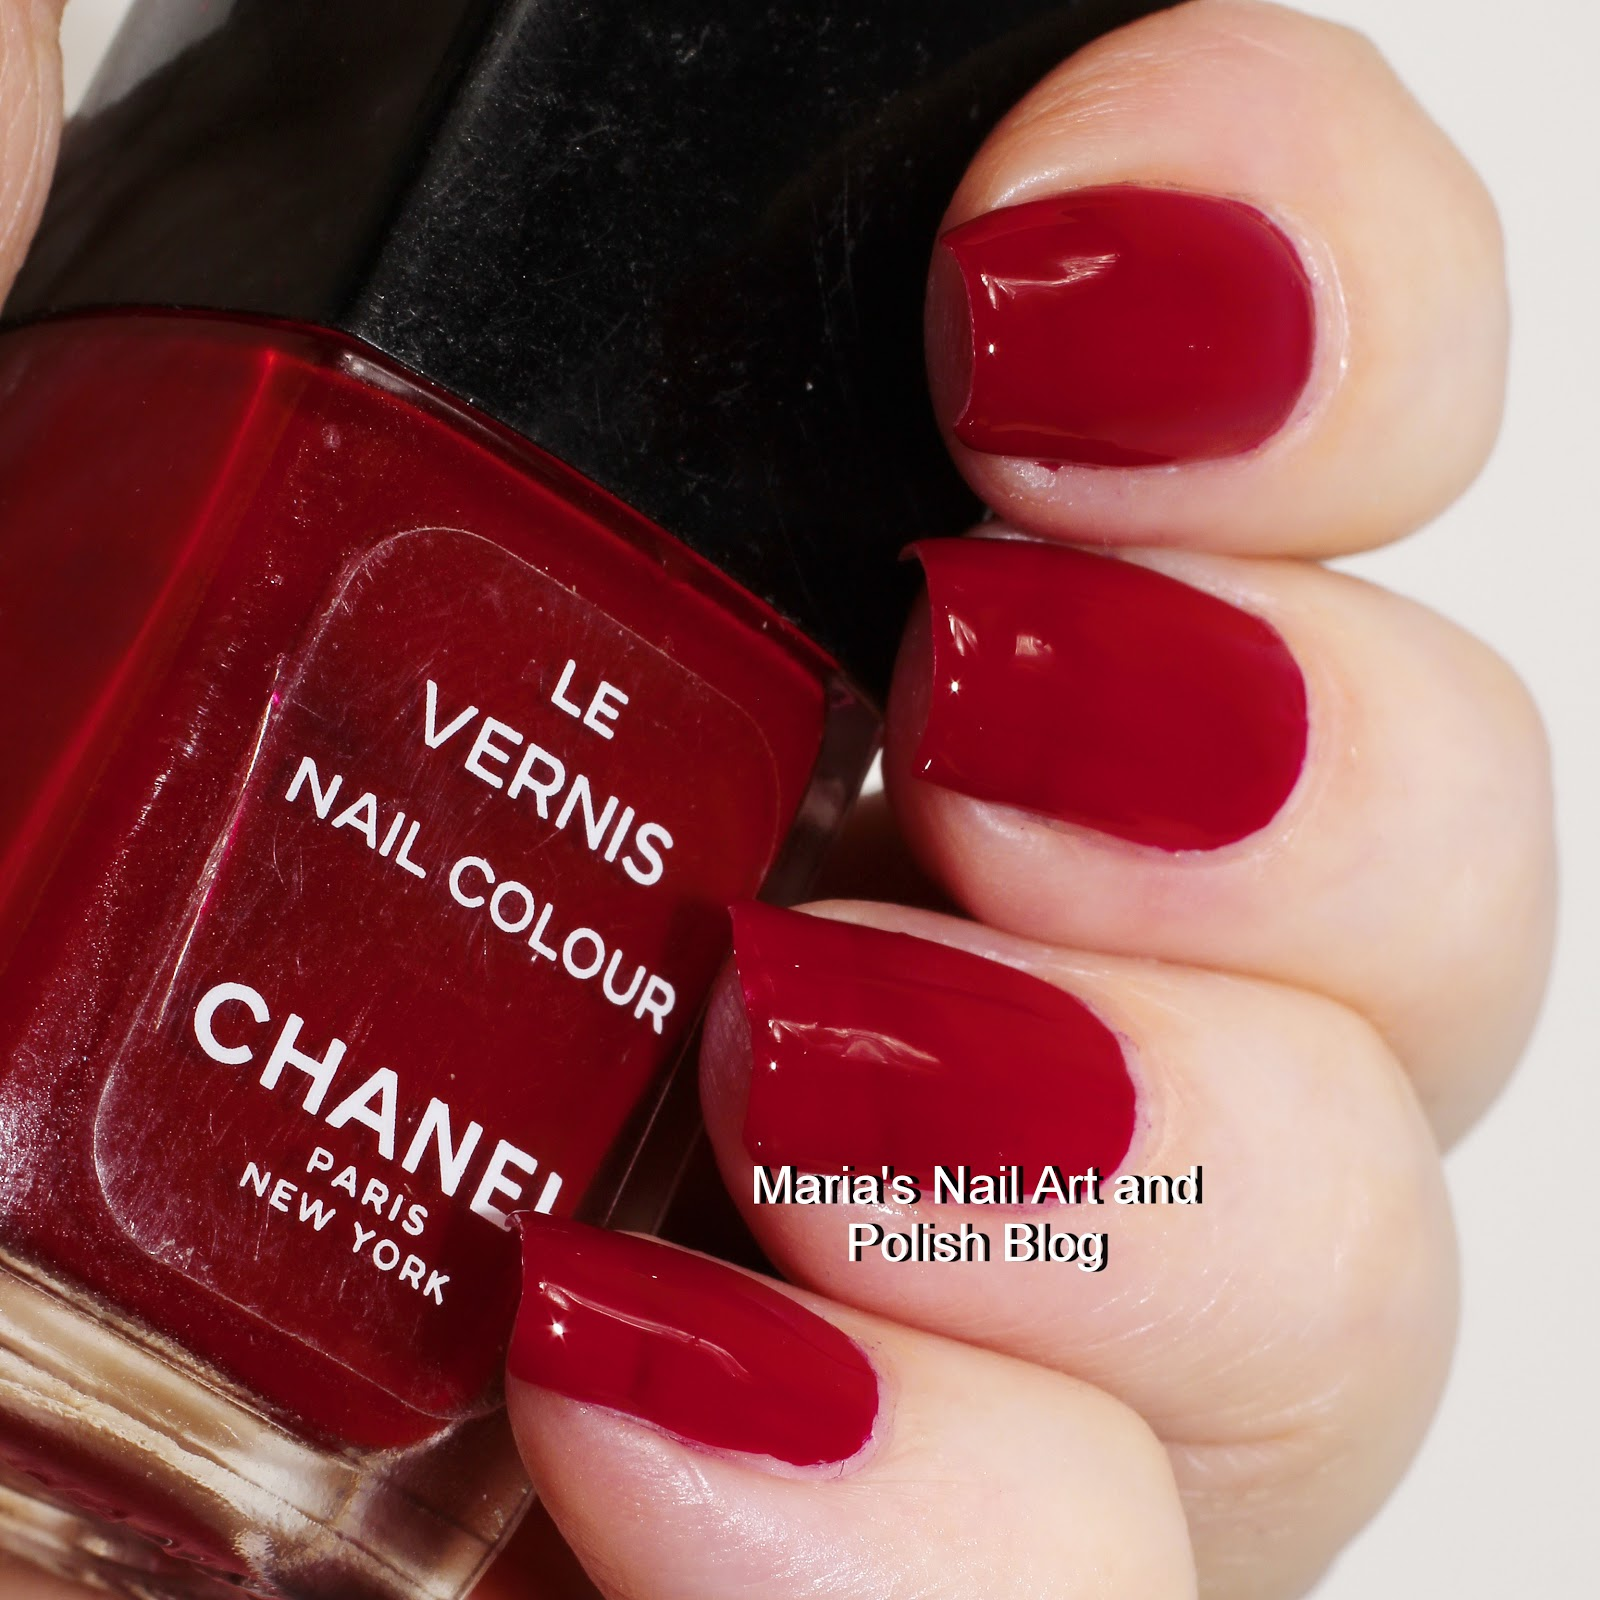 Marias Nail Art and Polish Blog: Chanel Pulsar swatches